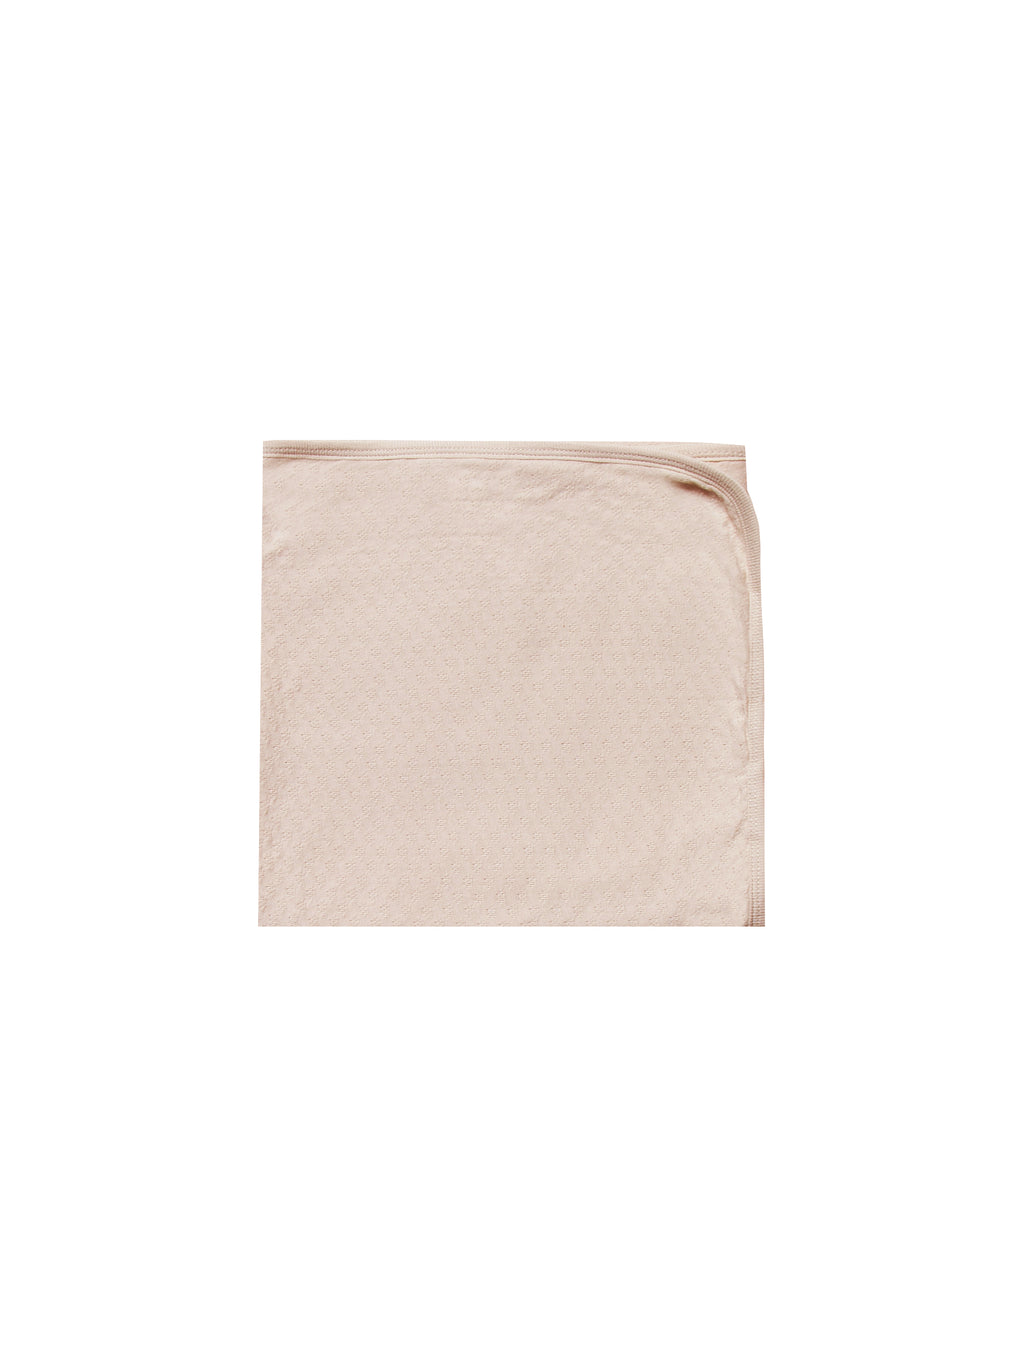 Quincy Mae - Pointelle Baby Blanket (Rose)